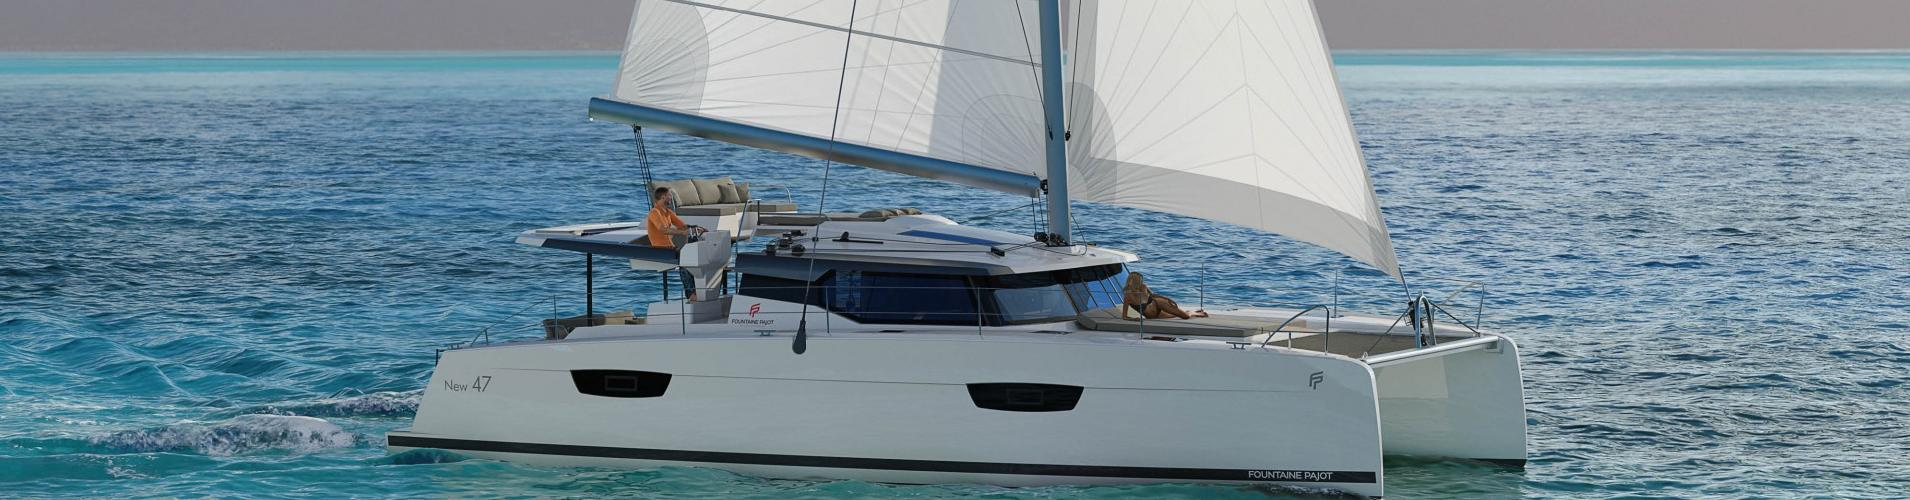 2018. Fountaine Pajot Saona 47